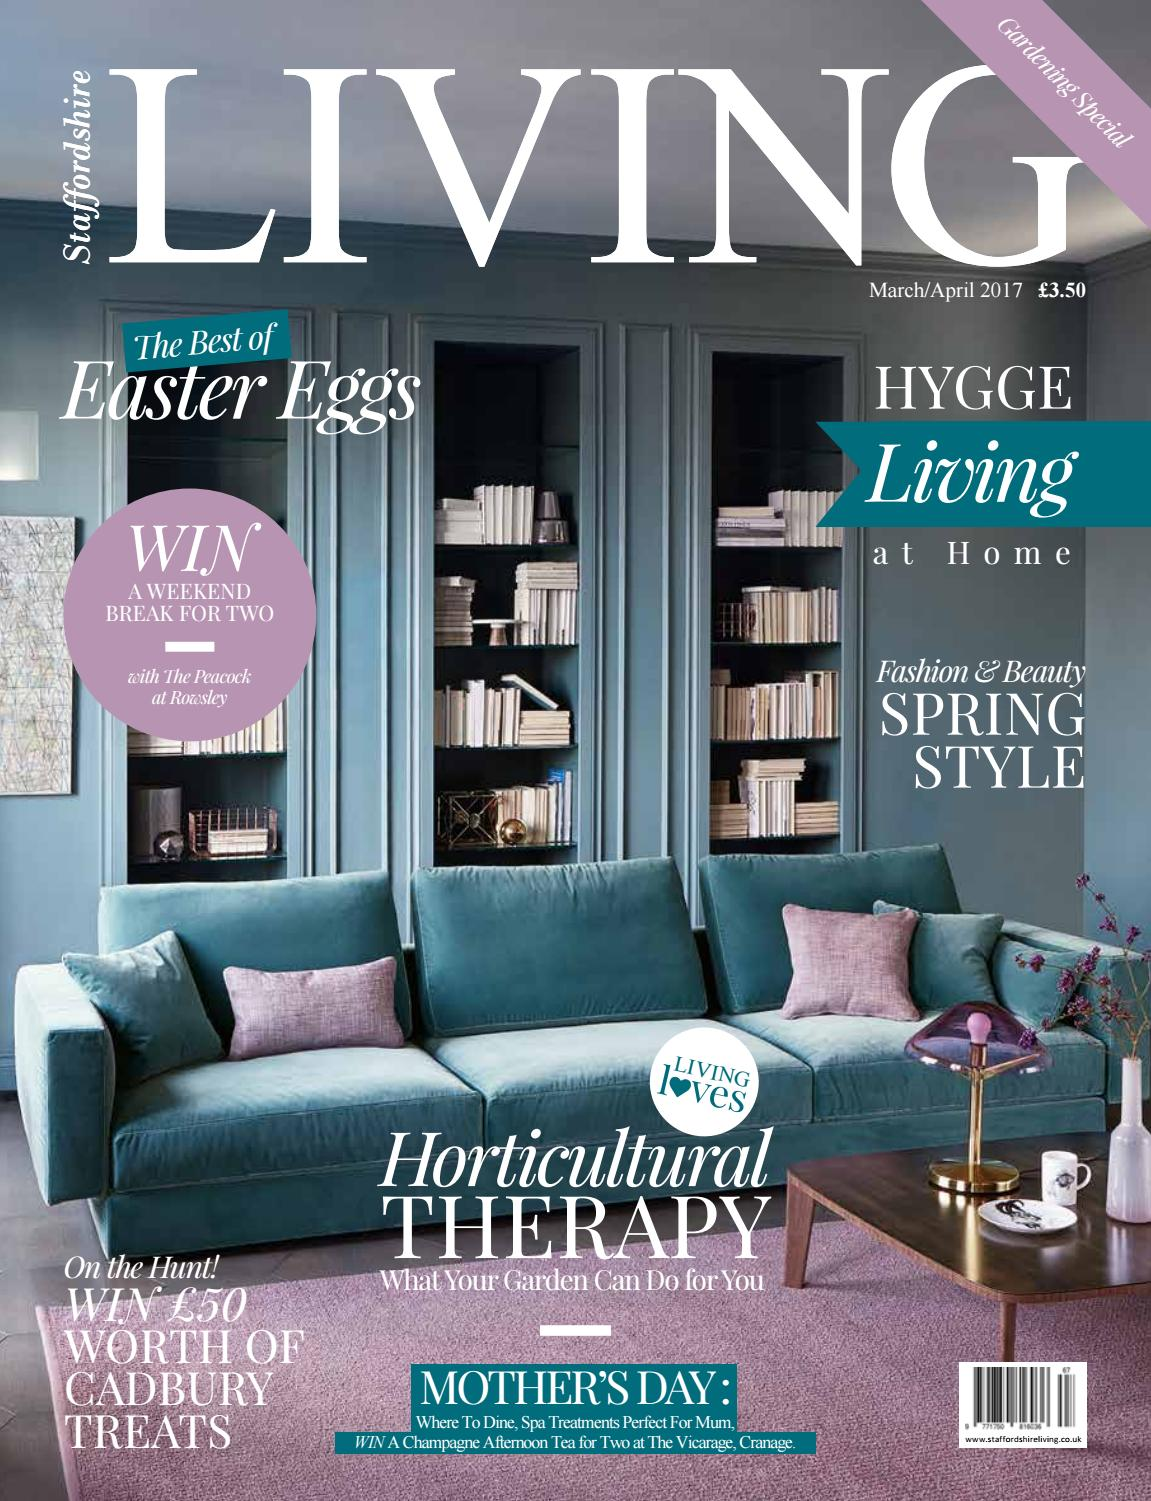 Staffordshire Living March/April 2017 by Staffordshire Media - issuu